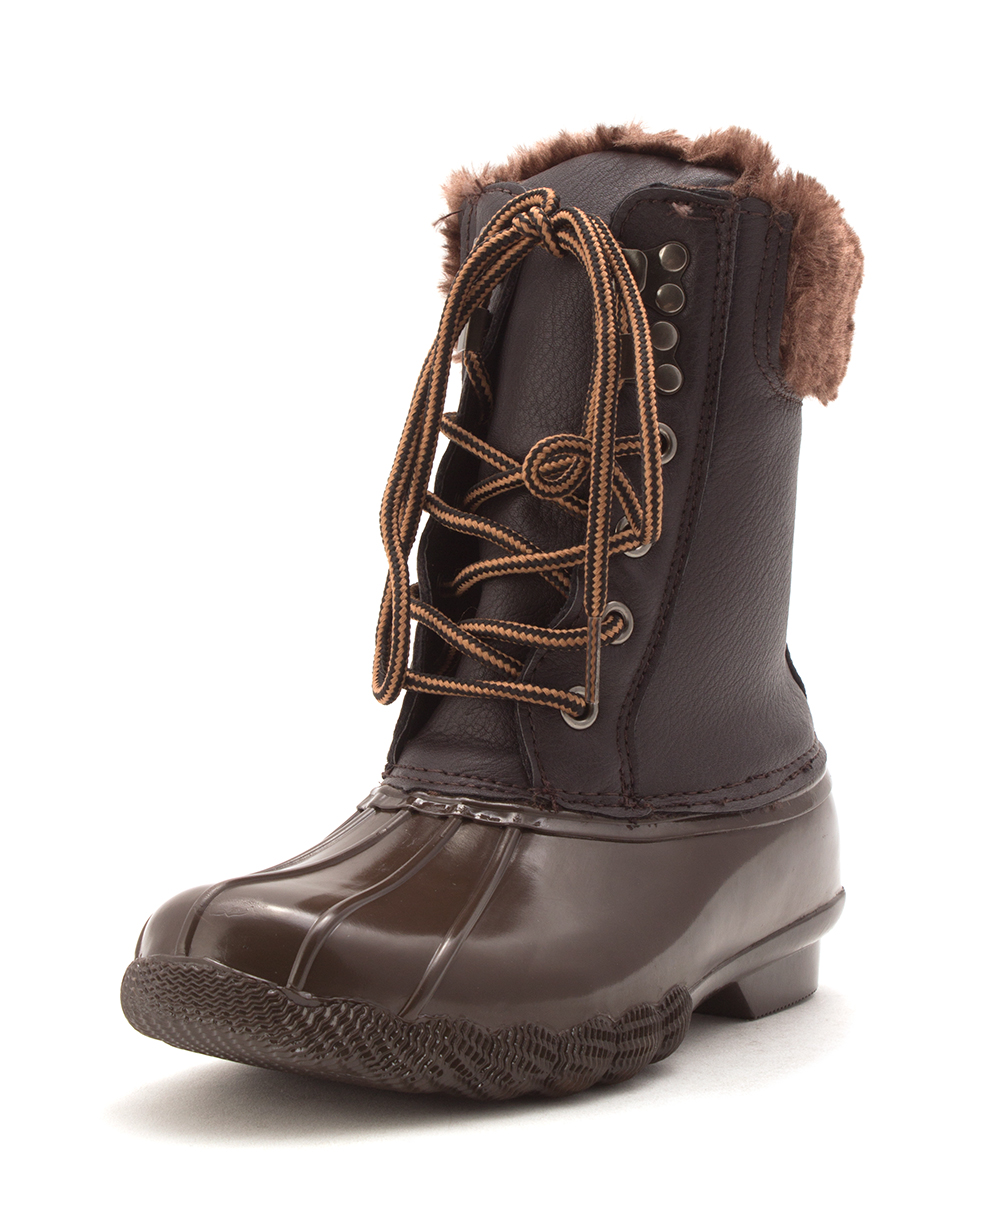 2f5488d6605 Steve Madden Womens T STORM Closed Toe Ankle Cold Weather